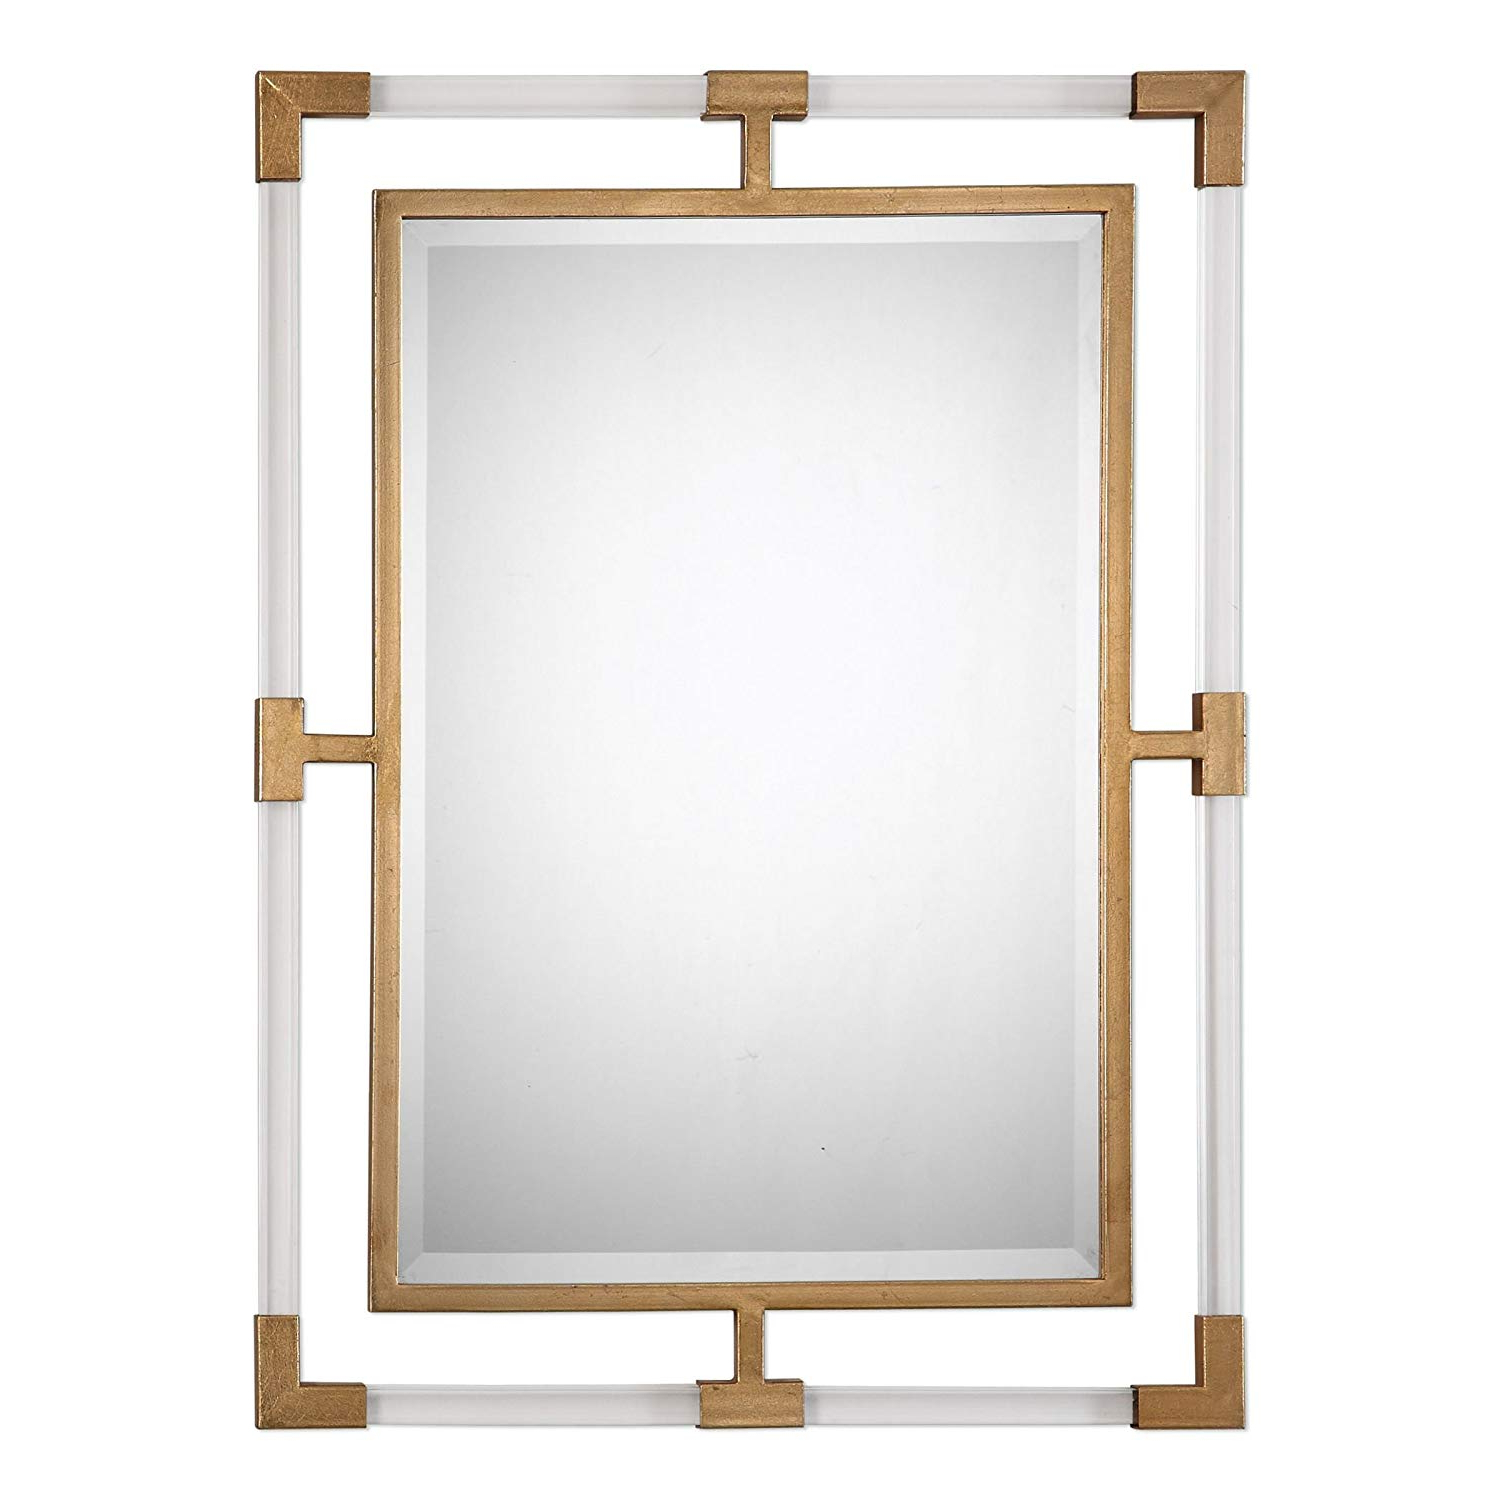 Contemporary Regarding Acrylic Wall Mirrors (View 8 of 20)